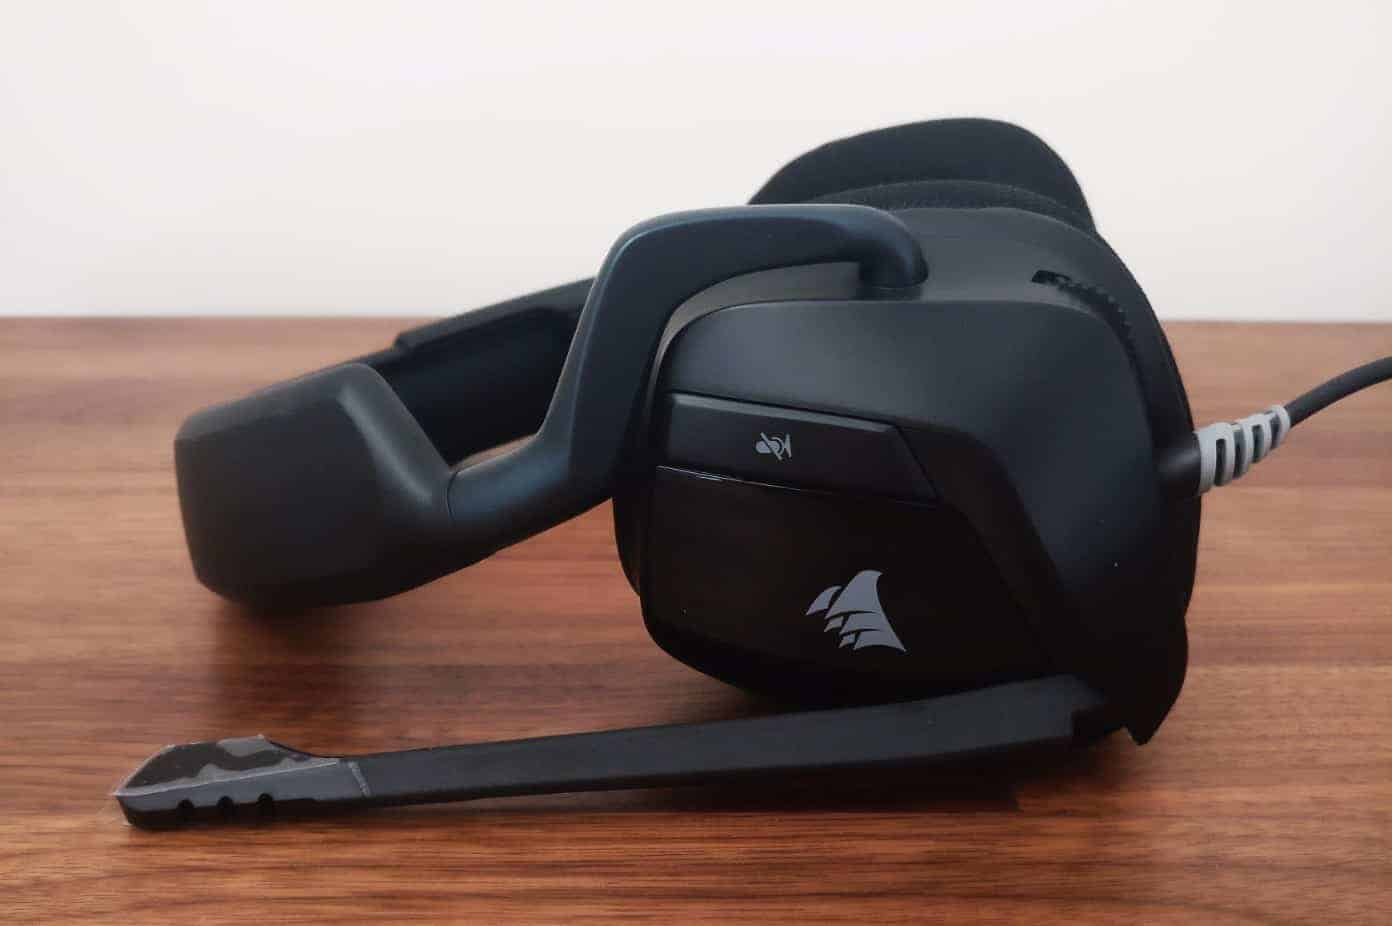 corsair-void-pro-photos-07 Corsair Void Pro Surround Gaming Headset Review